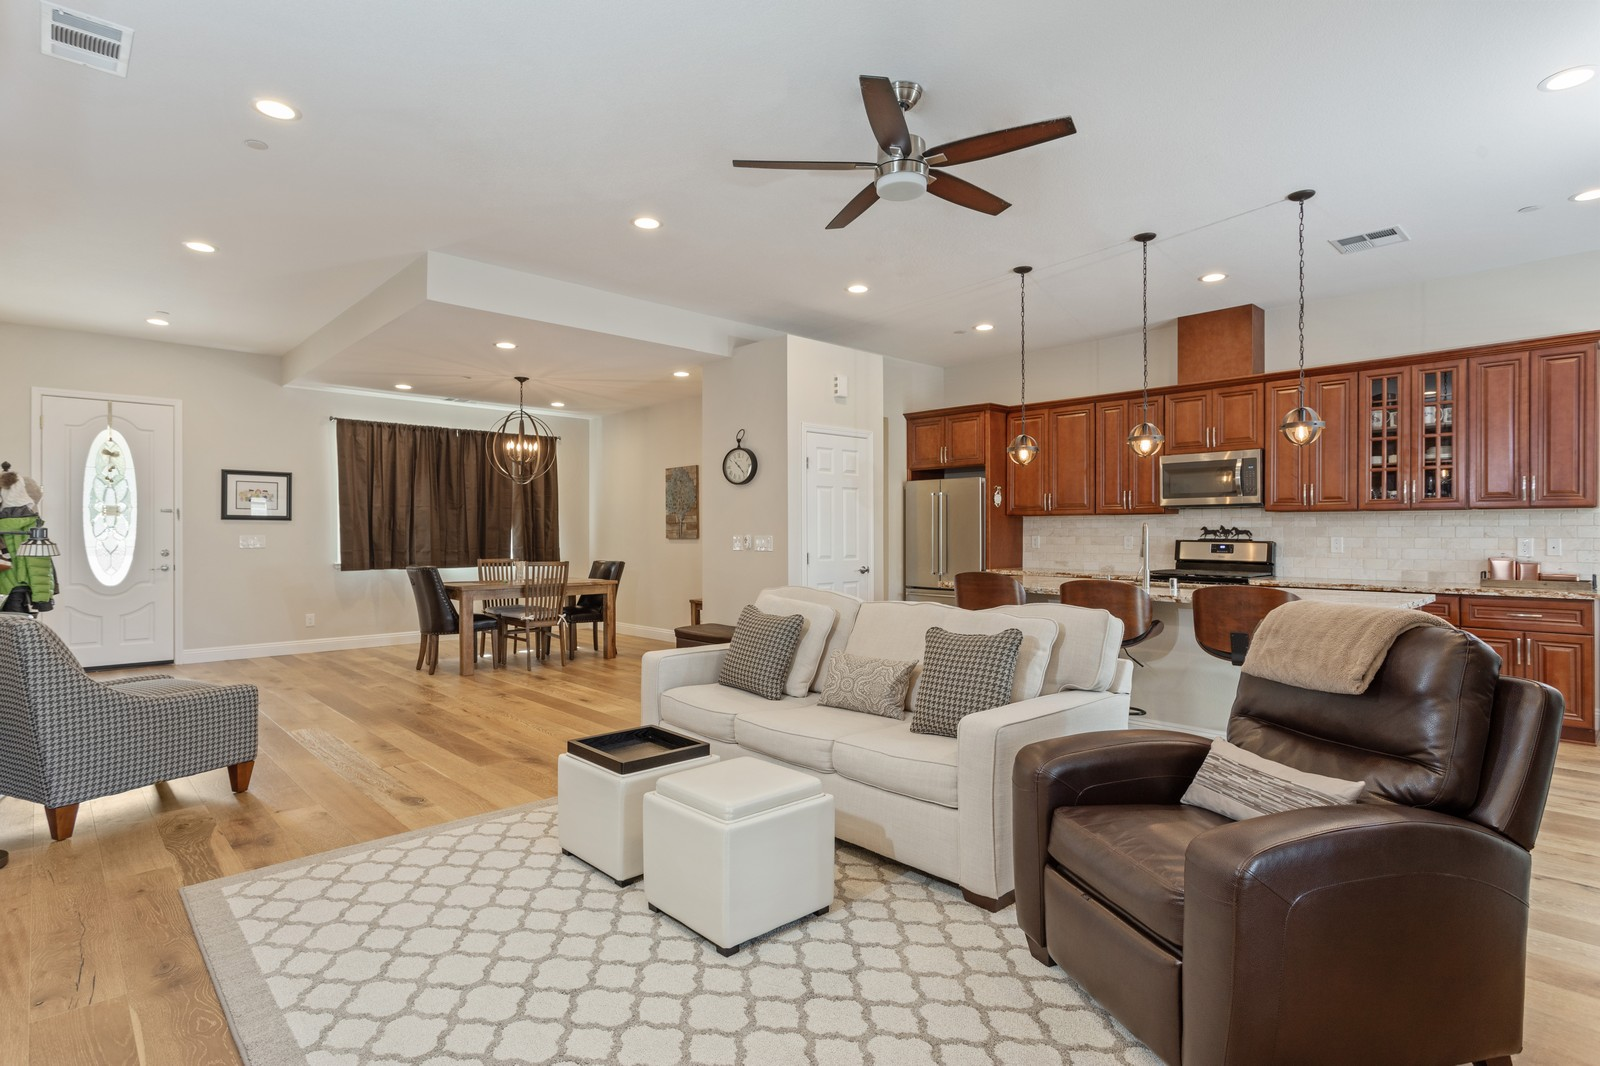 Real Estate Photography - 3205 Oxford Road, Cameron Park, CA, 95682 - Living Room